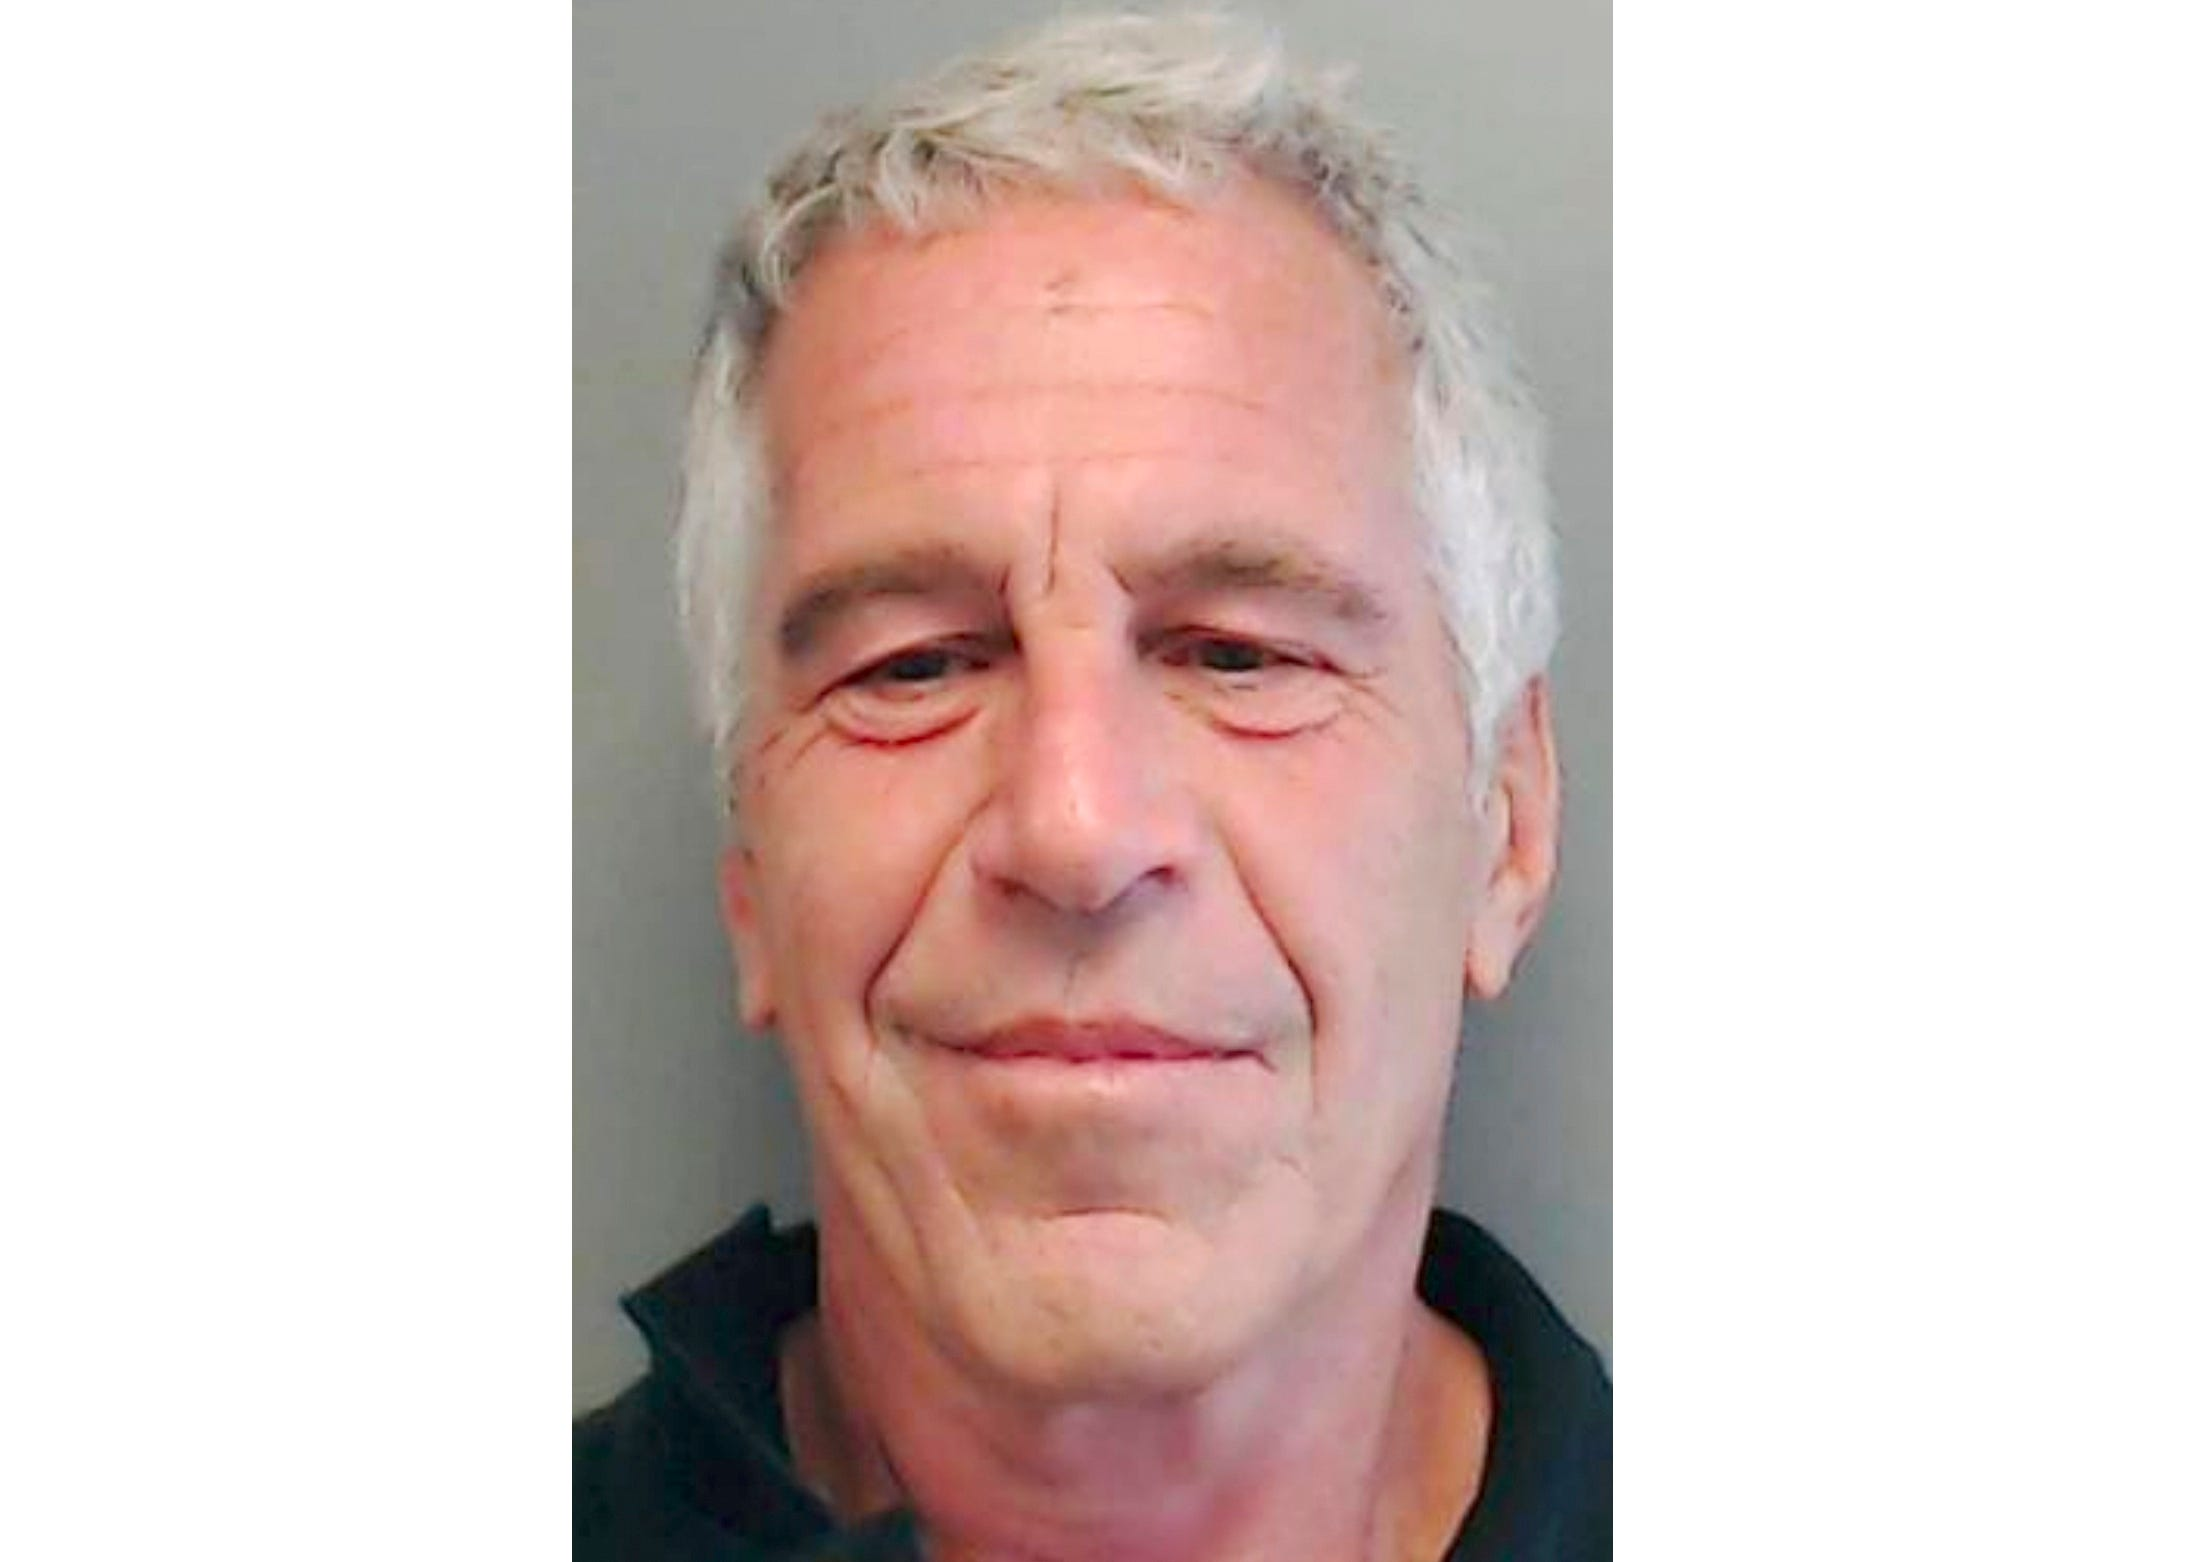 Jeffrey Epstein death: Justice and prison systems failed his victims